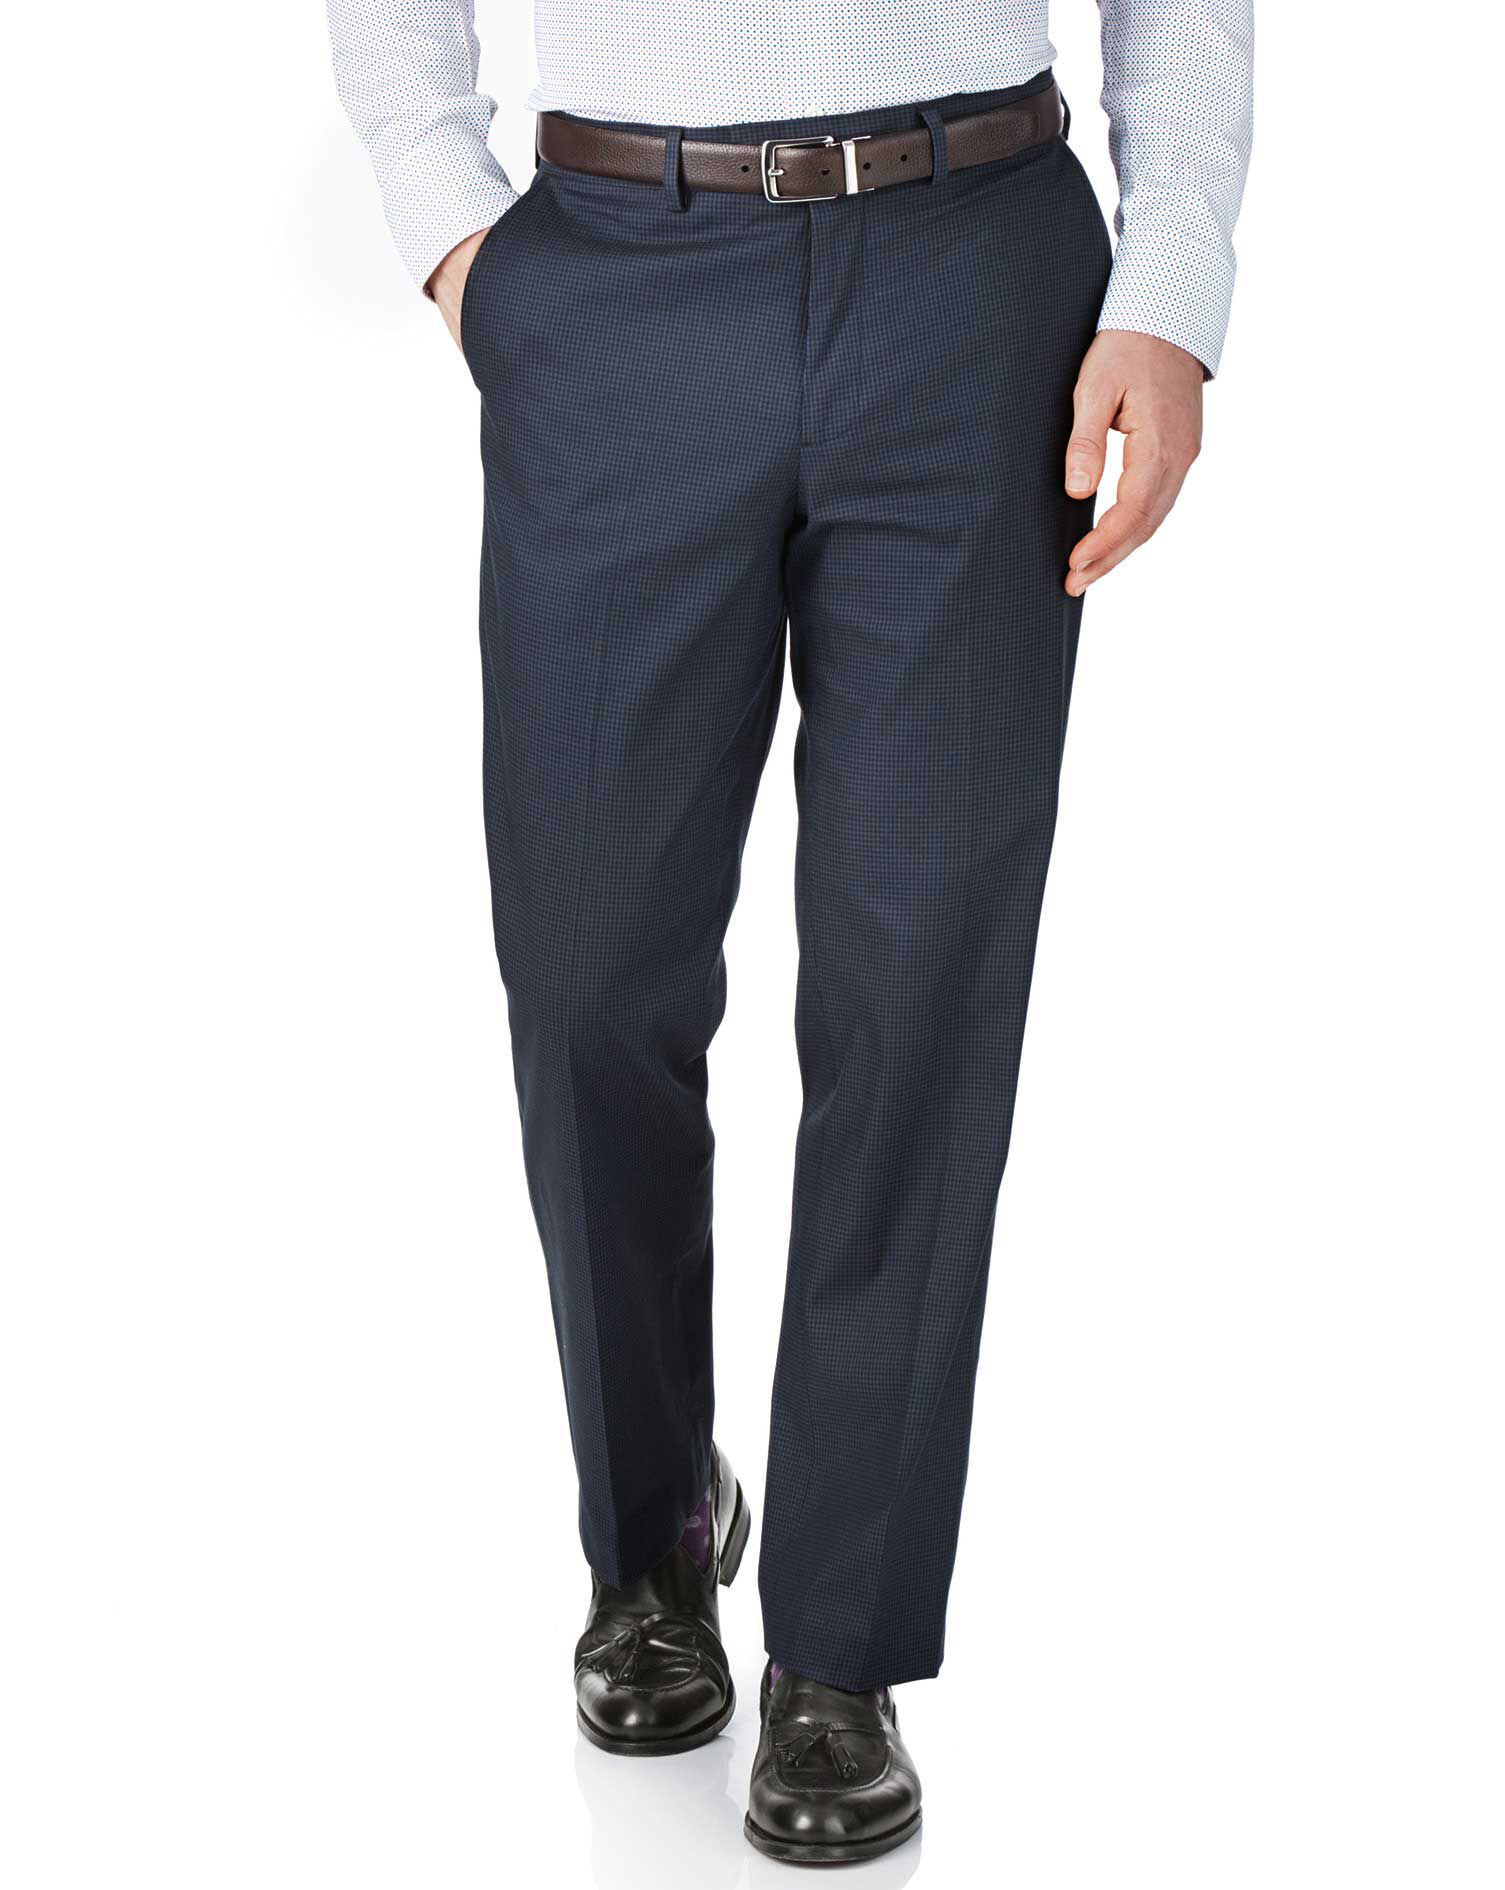 Navy and Blue Classic Fit Puppytooth Trousers Size W36 L30 by Charles Tyrwhitt